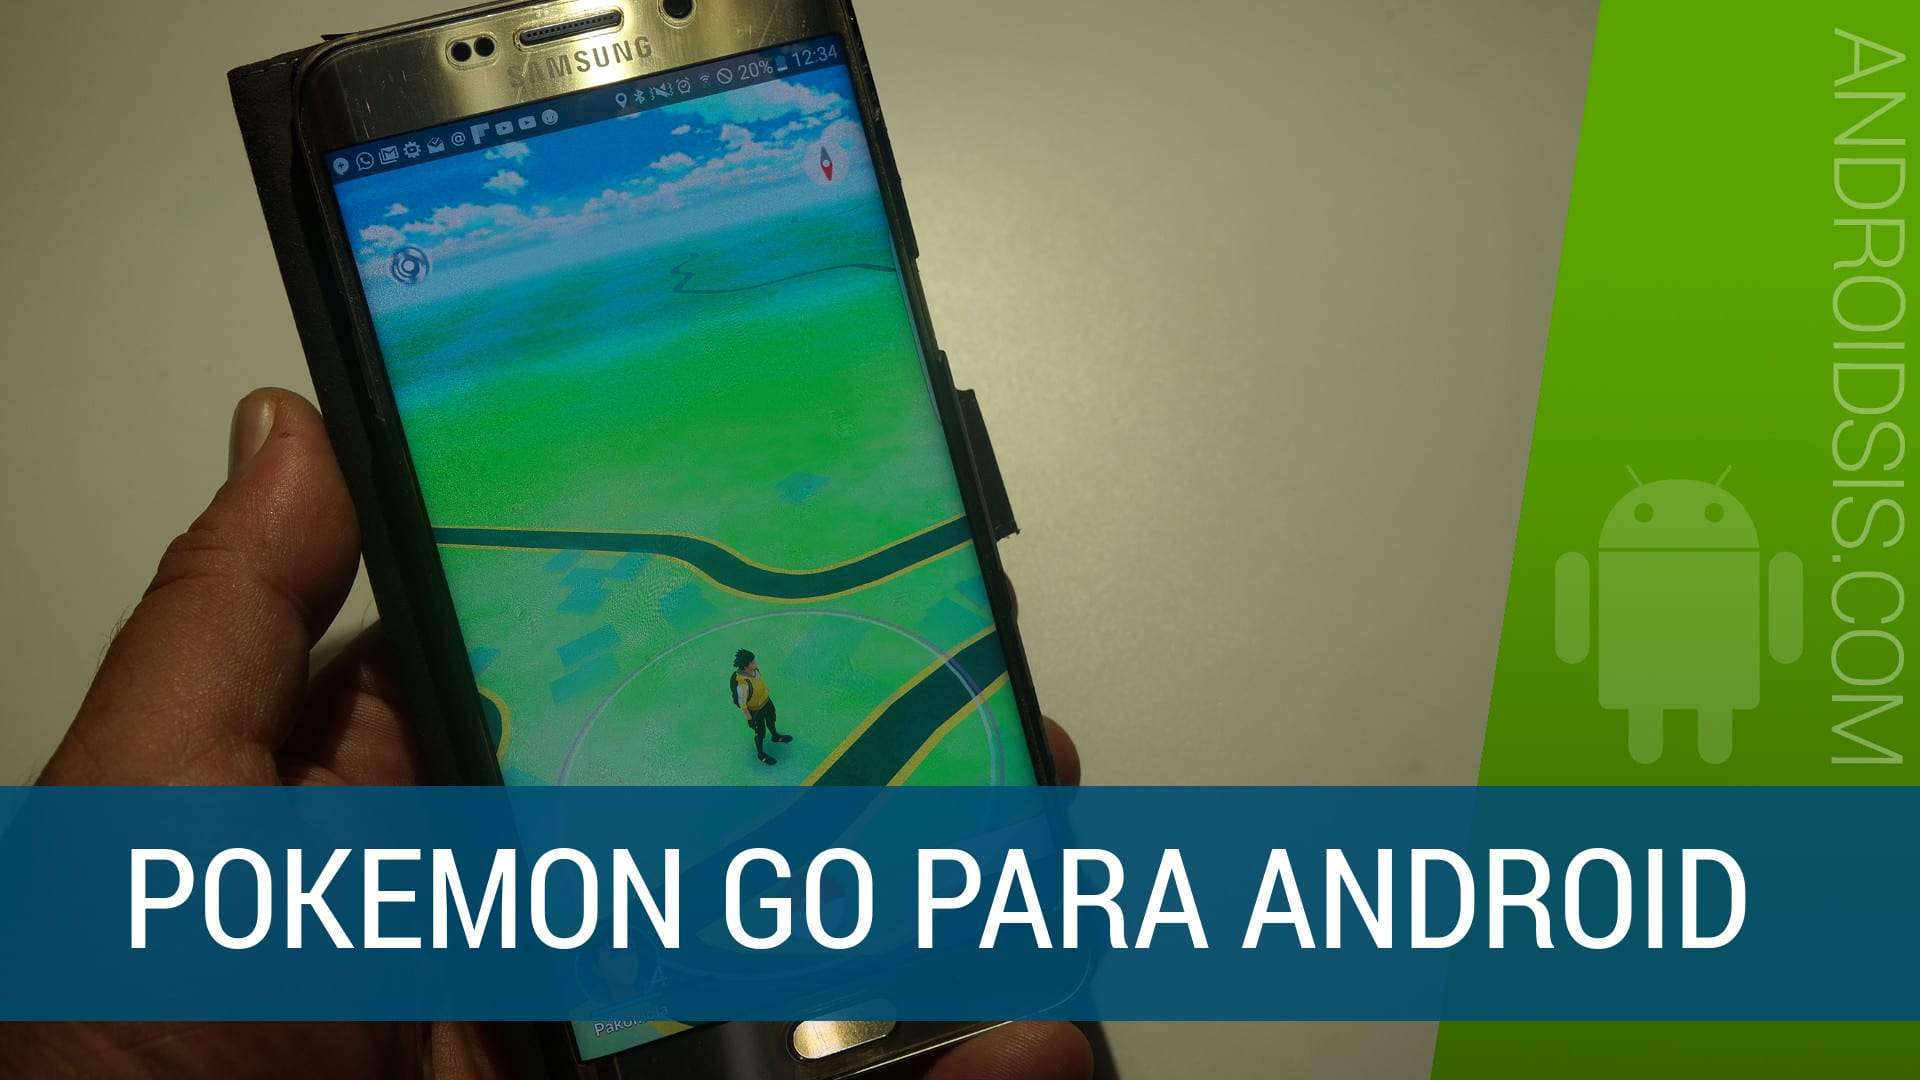 Pokemon Go en la vida real